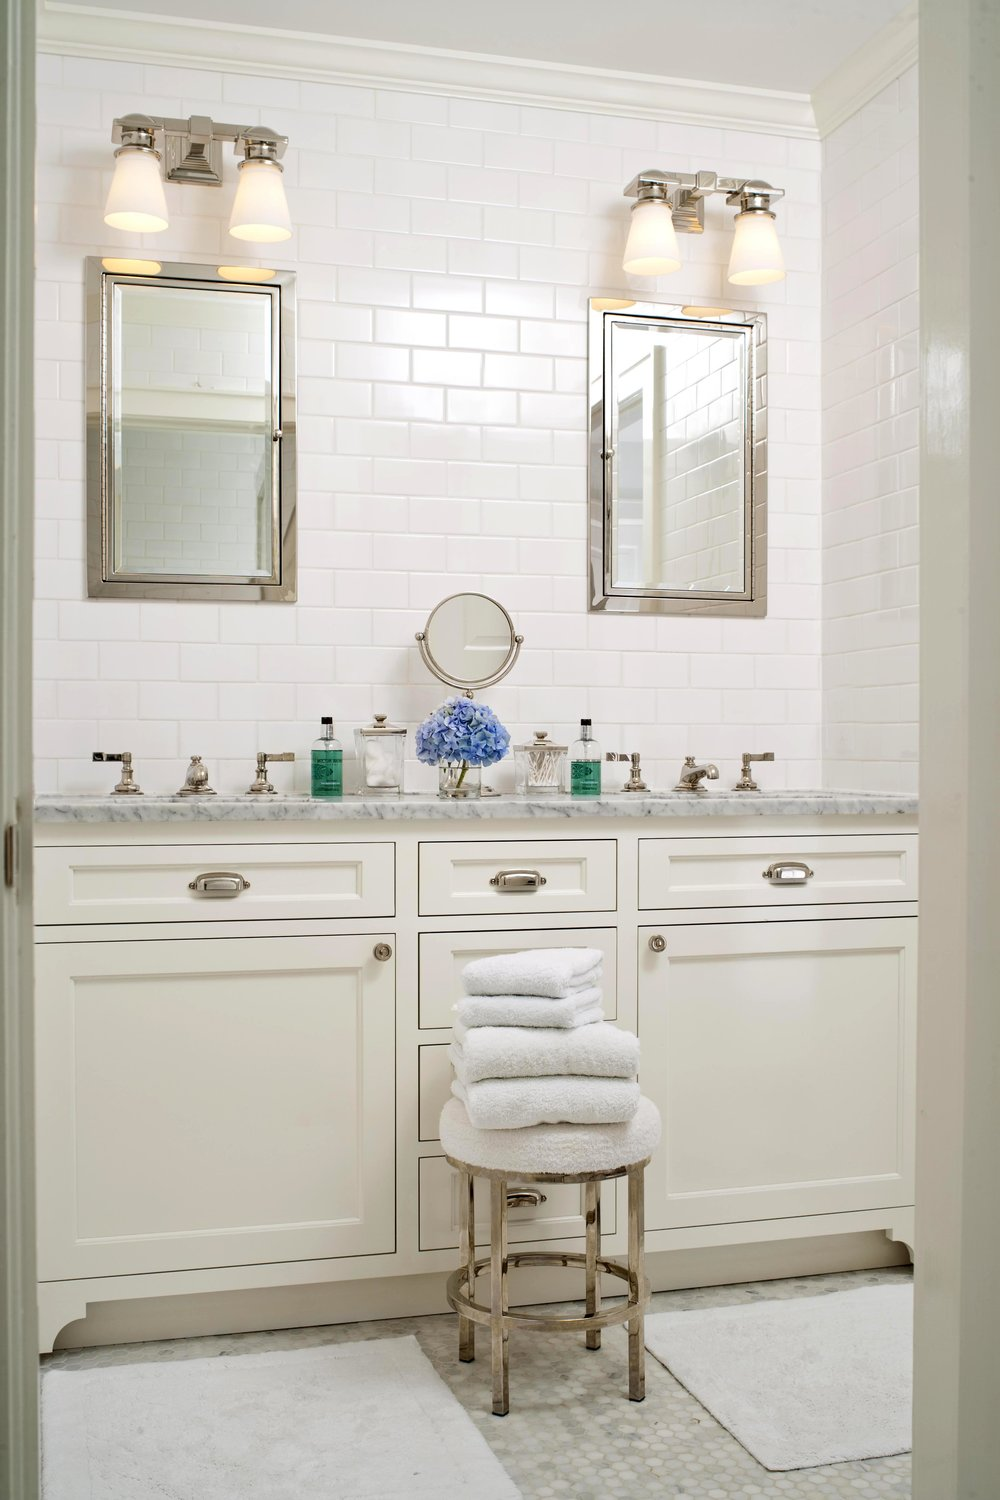 M-Bathroom_0611.jpg